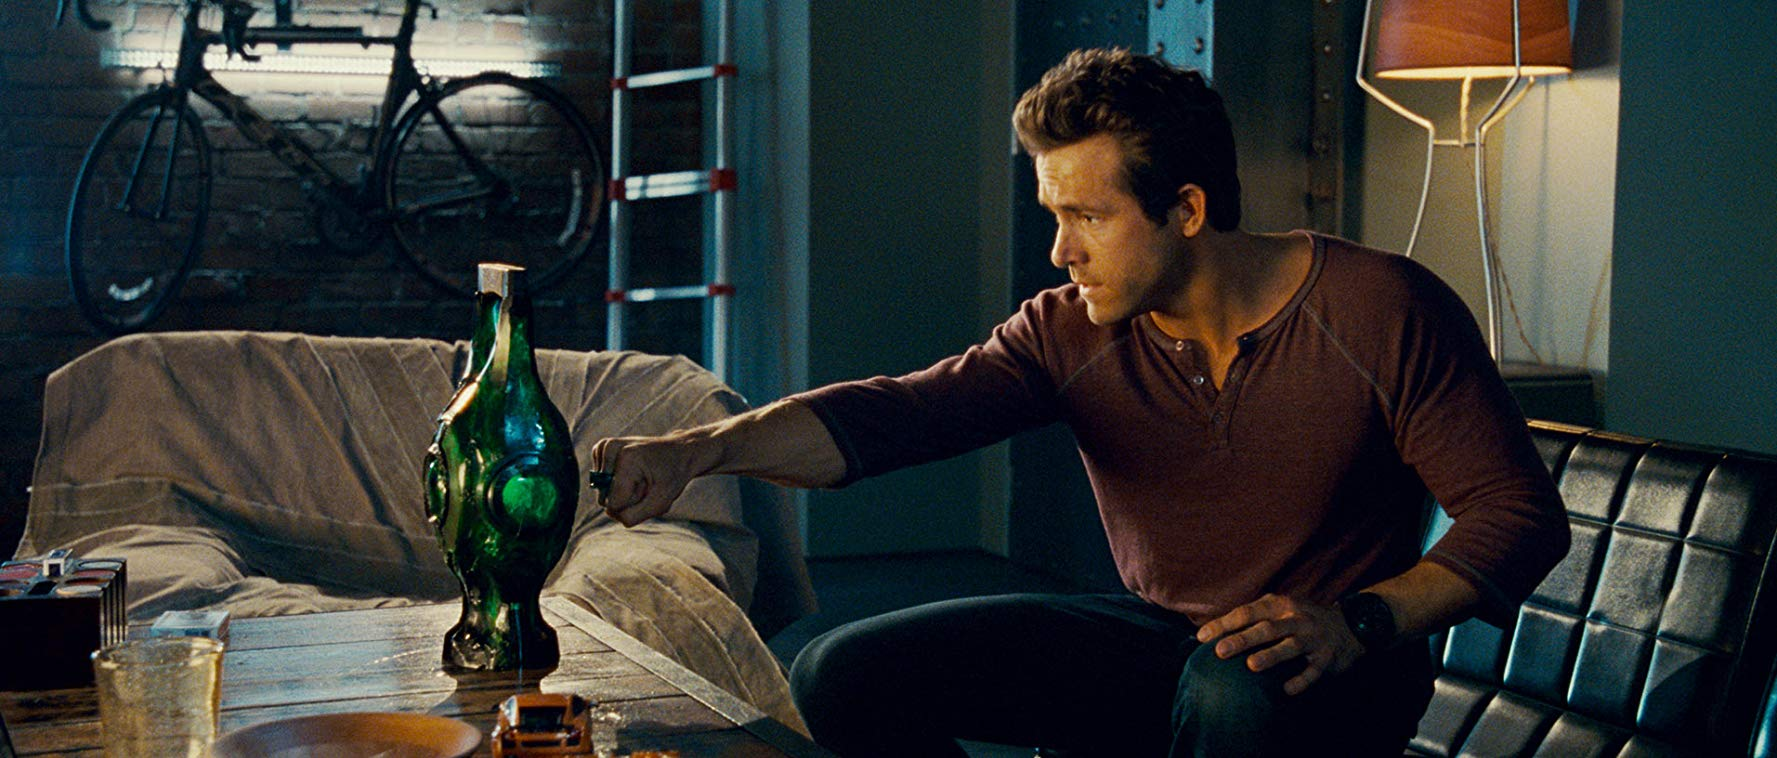 Hal Jordan (Ryan Reynolds) places his ring to the Green Lantern